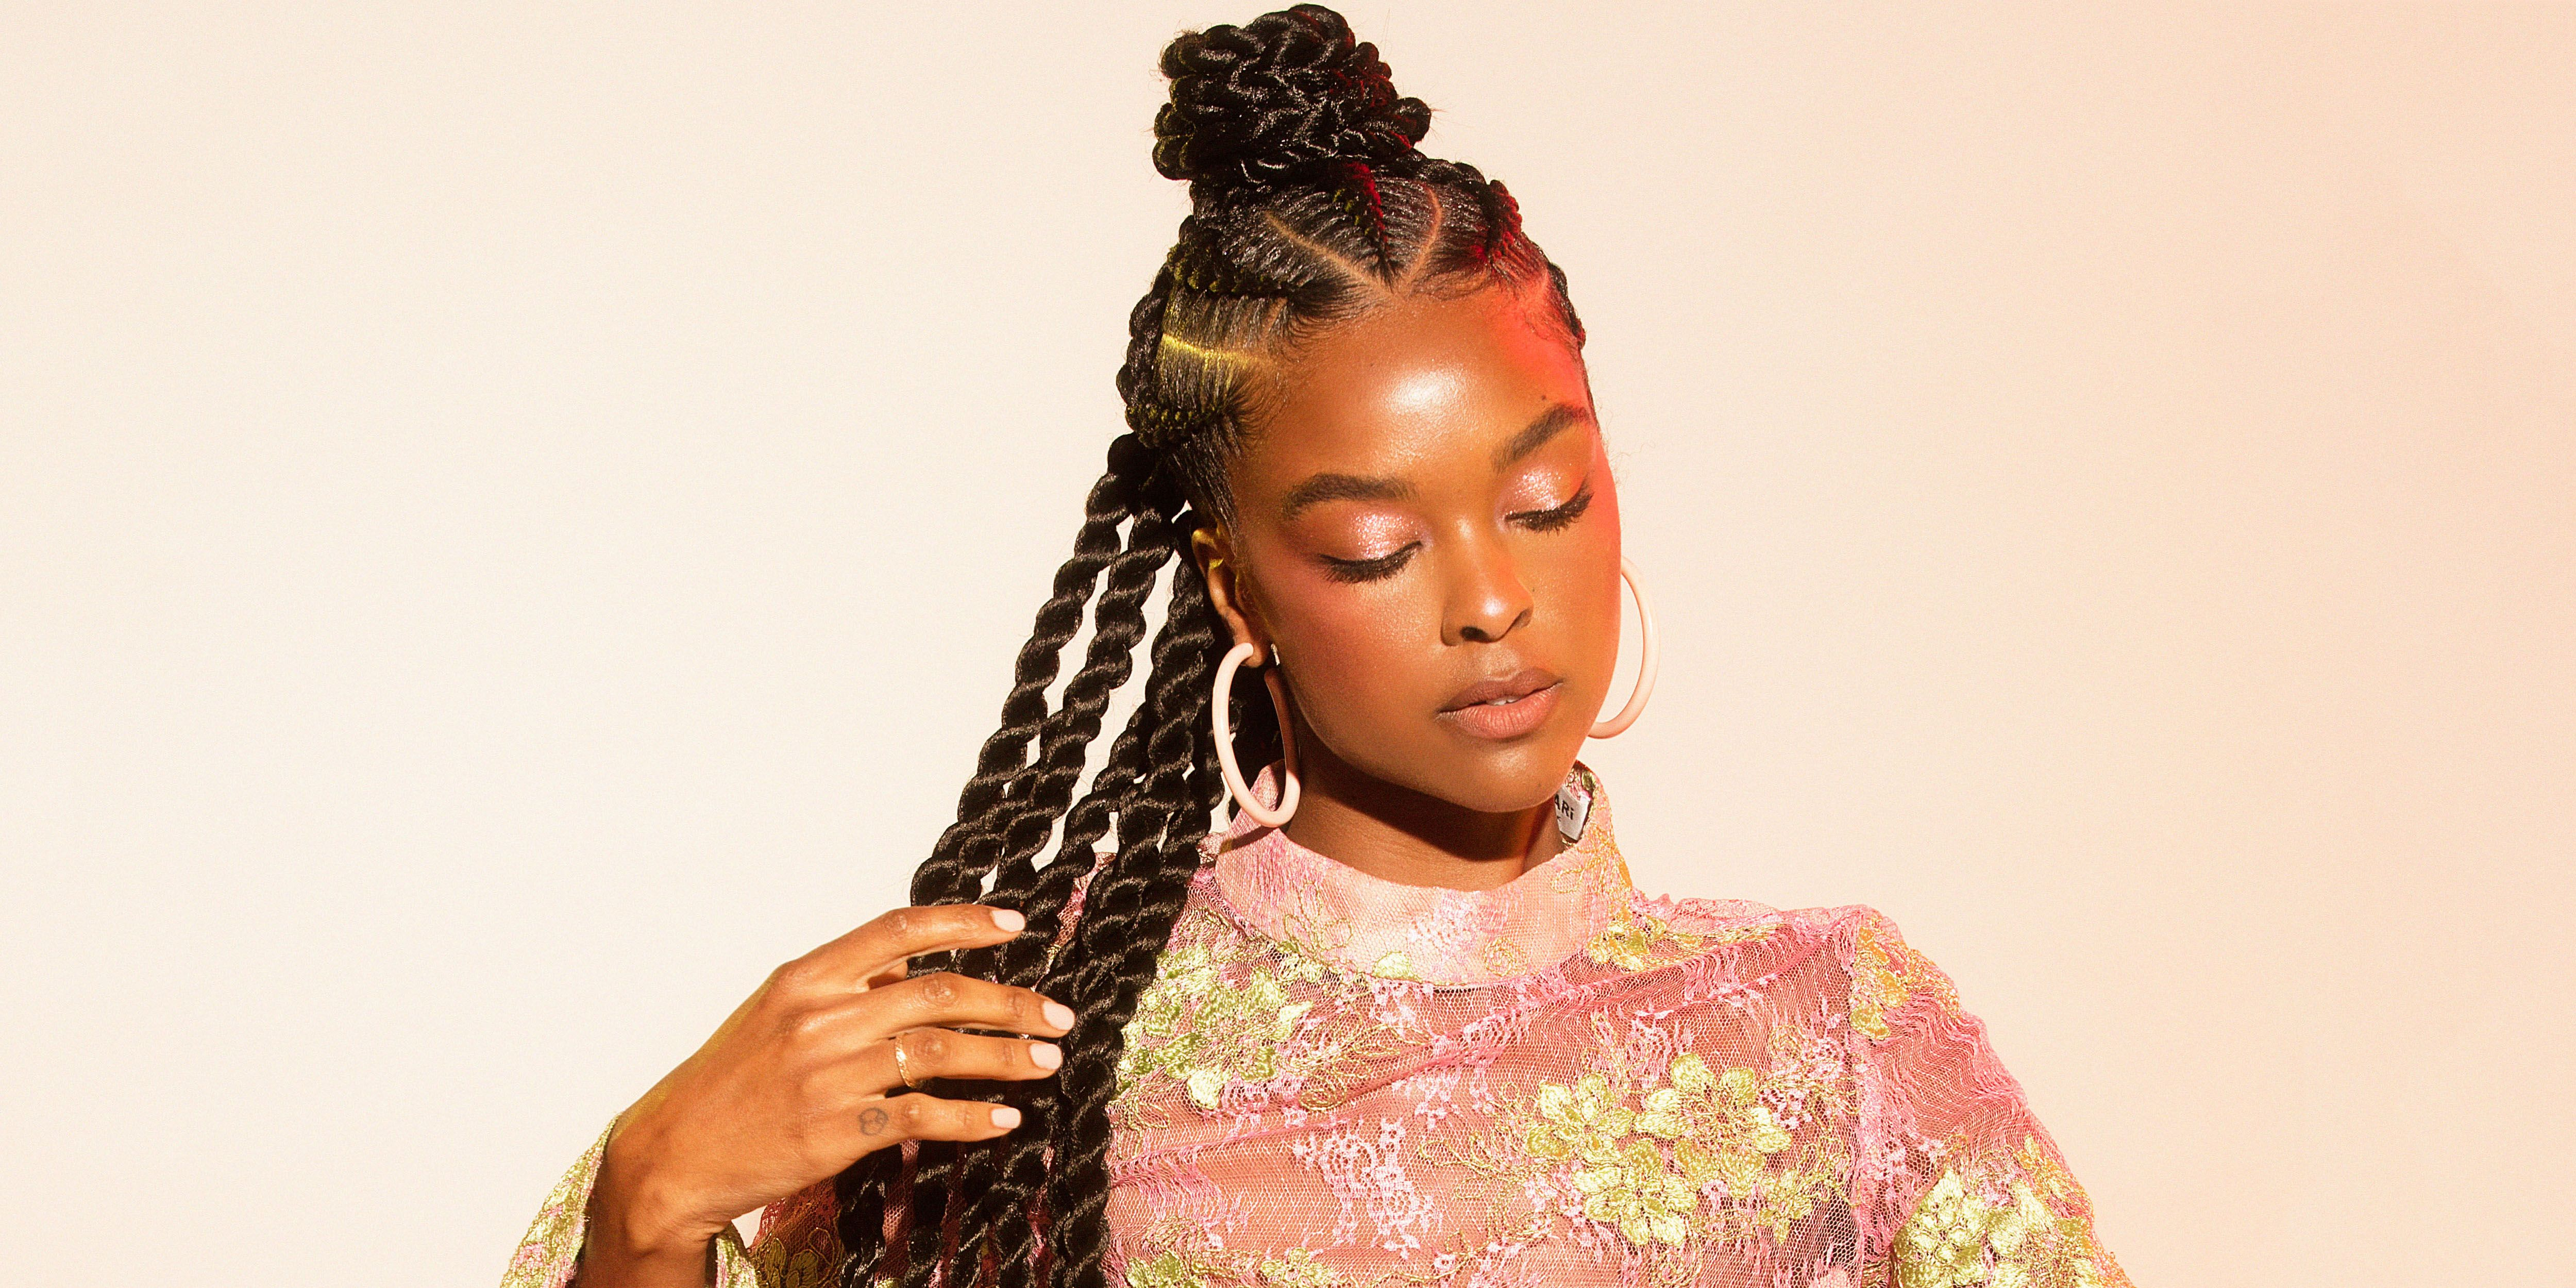 foto These Stitch Braids With Zigzag Parts Are a Huge YES